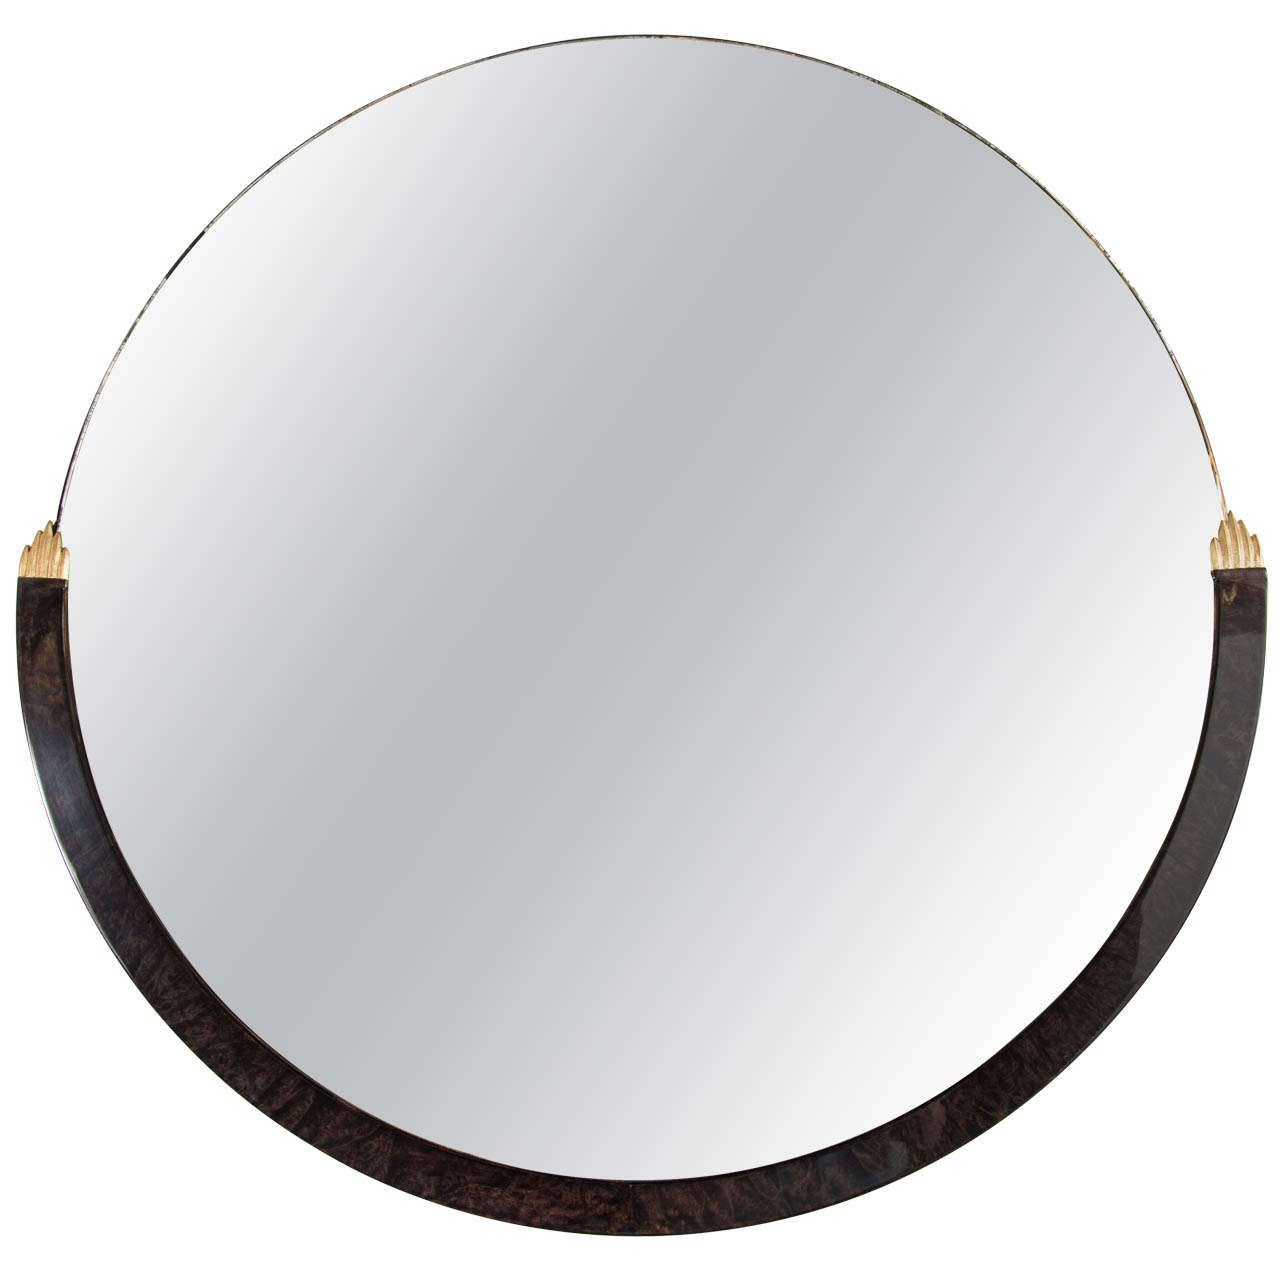 Art Deco Round Mirror in Burled Wood and Gilded Accents 1